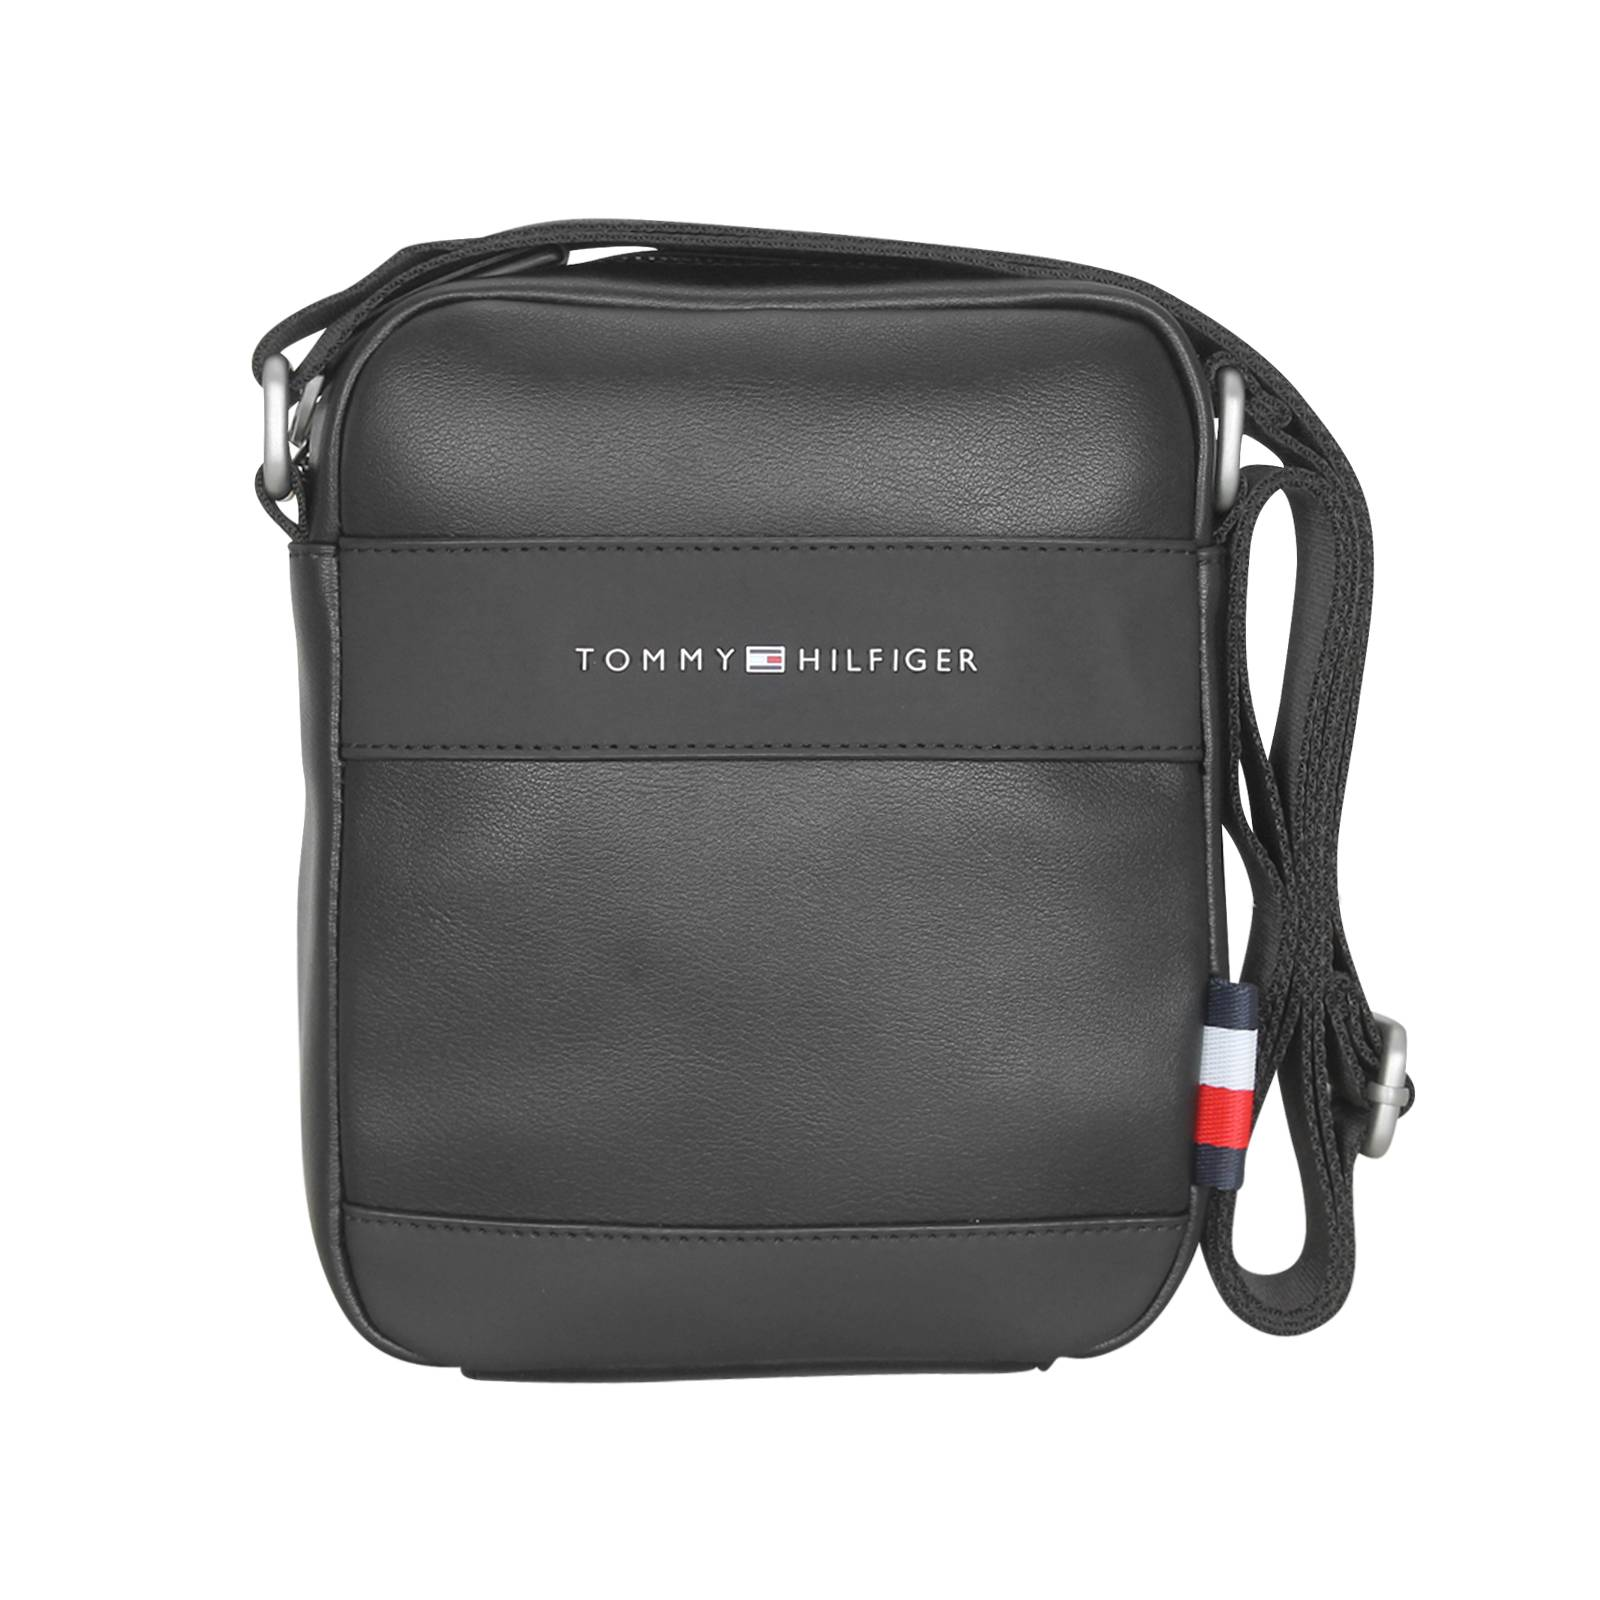 0f6a84e90 TH City Mini Reporter - Tommy Hilfiger Men s bag made of synthetic ...